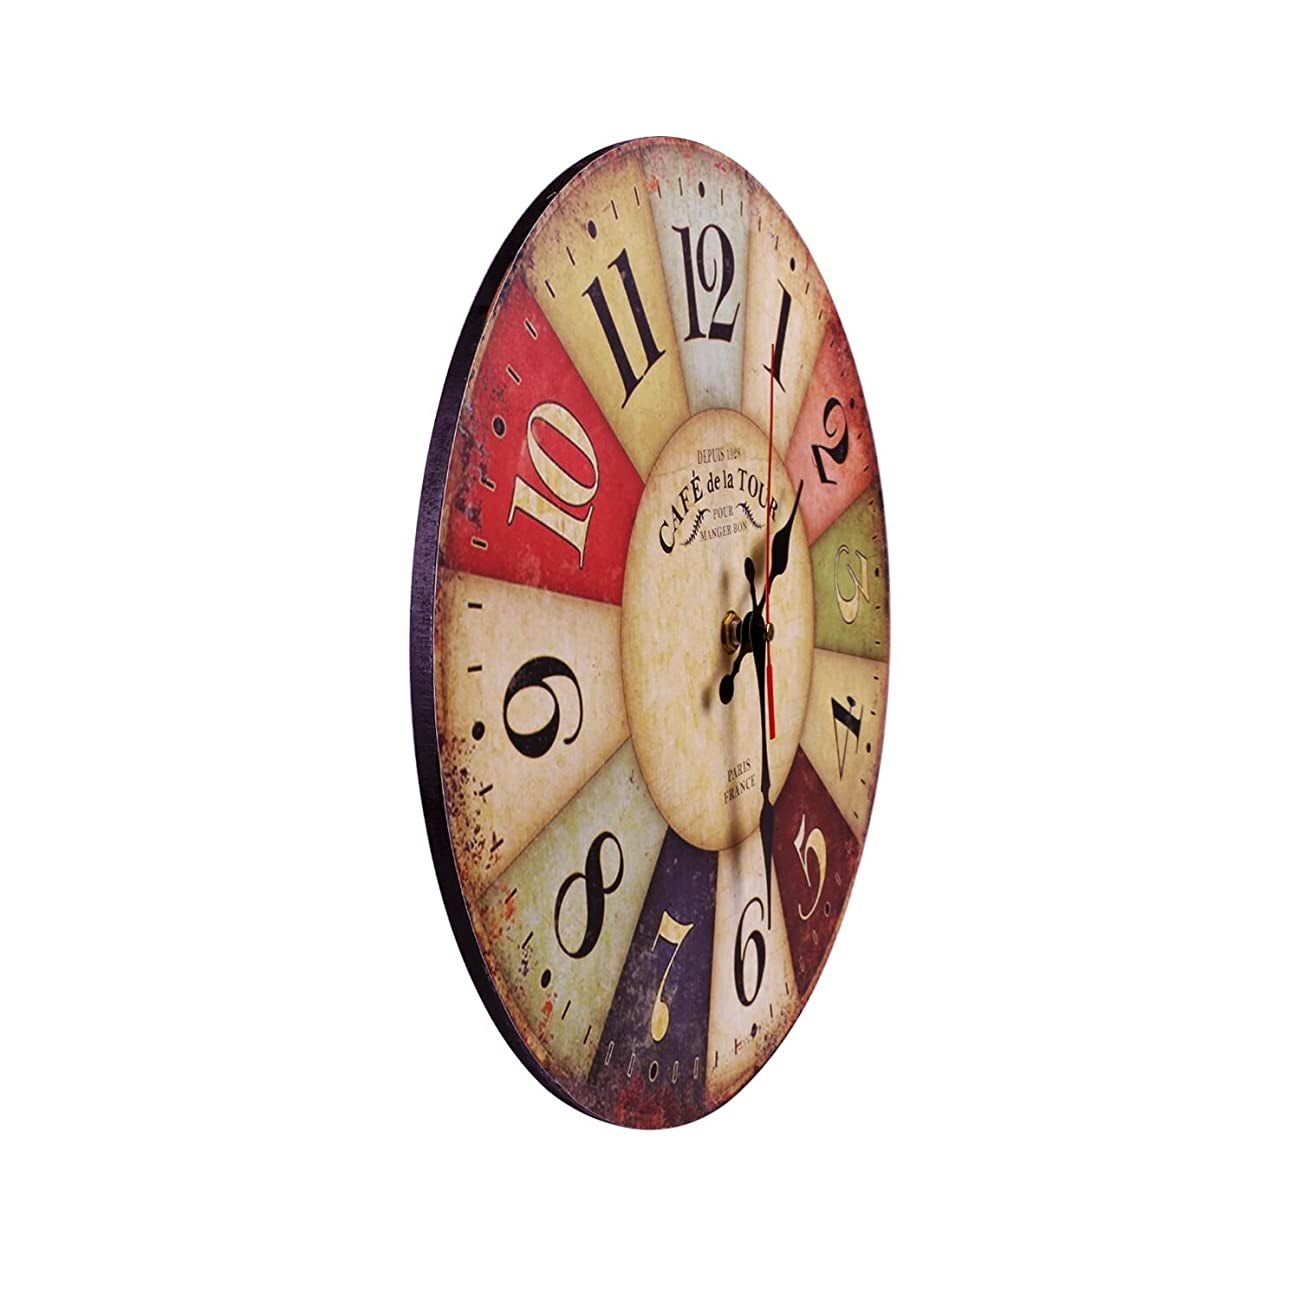 Wood Wall Clock, NALAKUVARA Vintage Colorful France Paris French Country Tuscan Retro Style Arabic Numerals Design Non -Ticking Silent Quiet Wooden Clock Gift Home Decorative for Room, 12-Inches 2